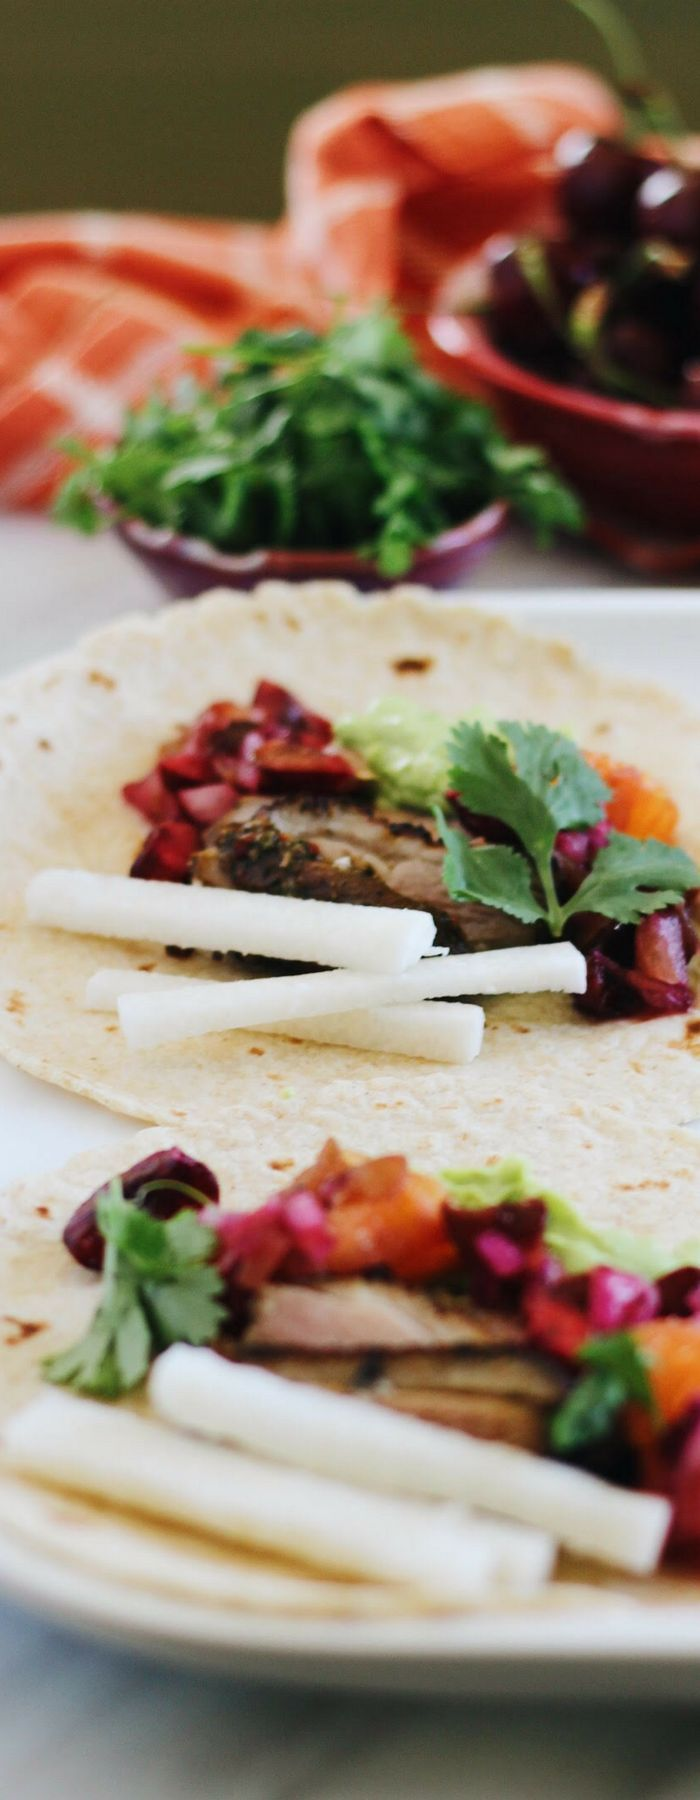 Duck confit tacos with a fresh cherry-orange salsa is the perfect summer meal! Whether you buy duck confit or make your own, this is a great dinner party recipe to impress your guests.